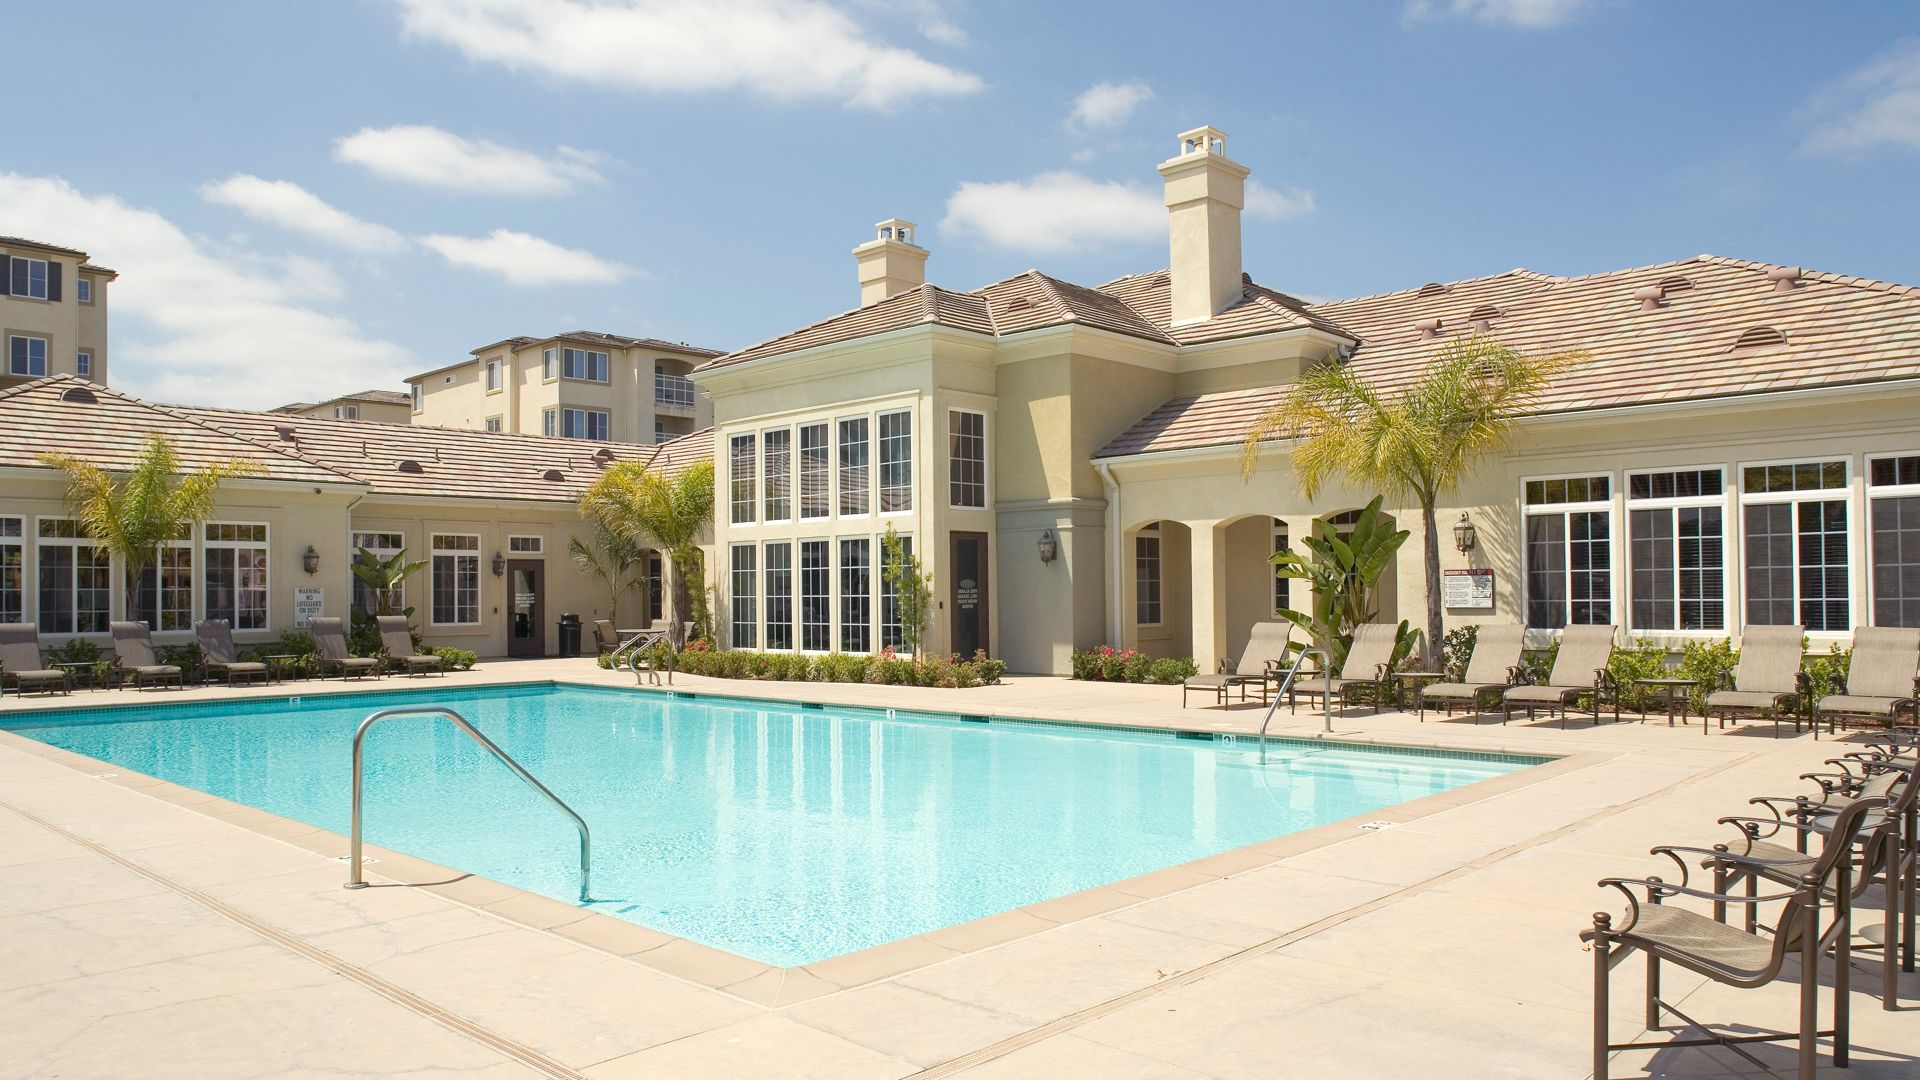 Bella Vista At Warner Ridge Apartments   Swimming Pool